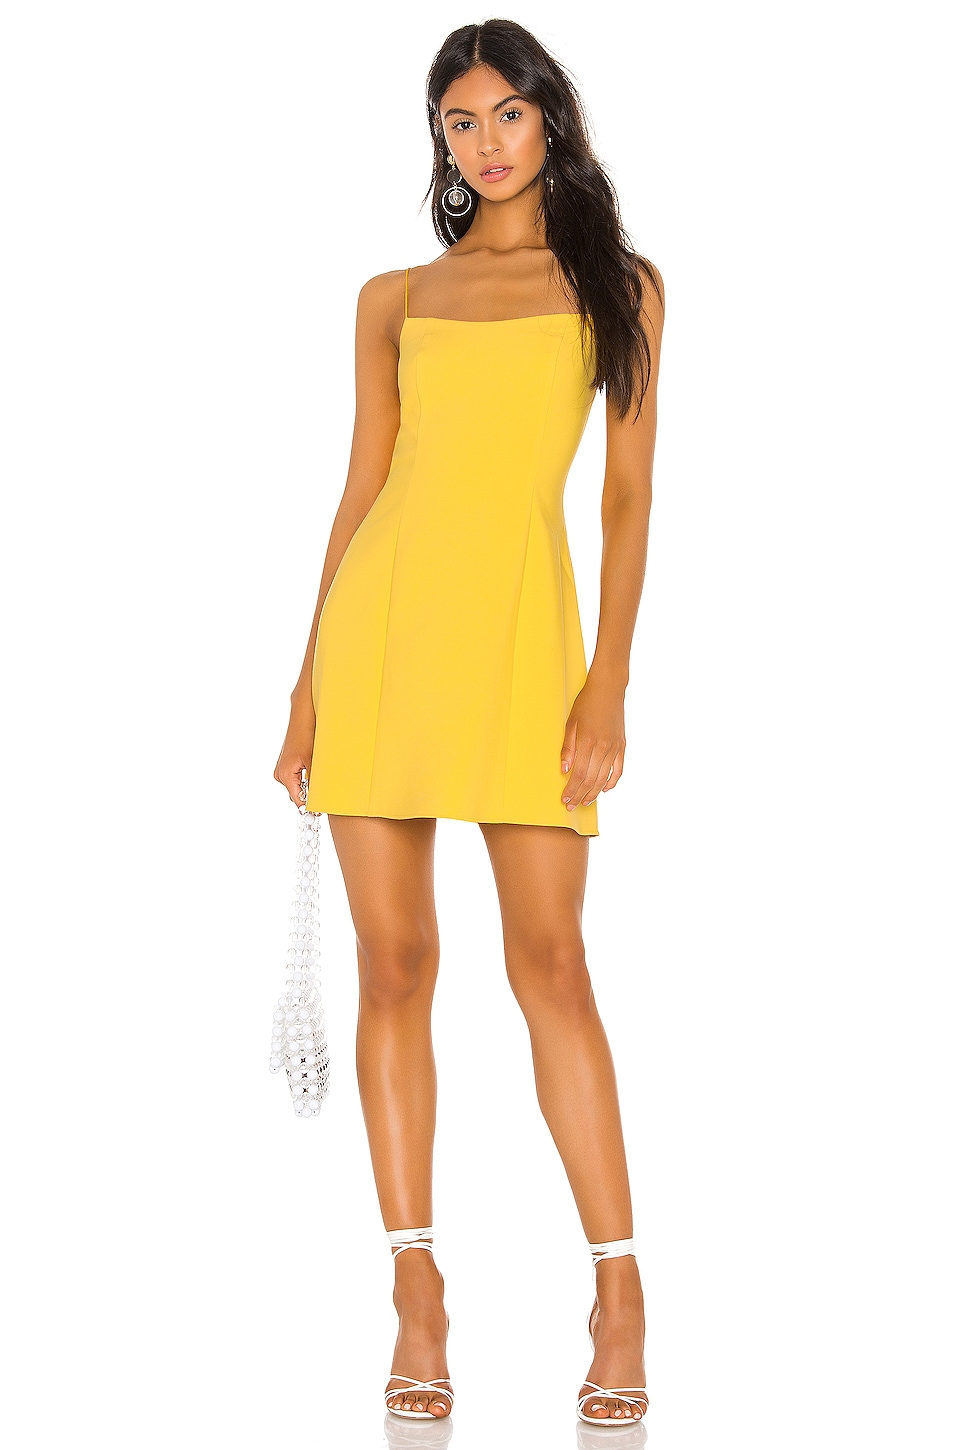 LIKELY Carter Dress in Yellow Chrome